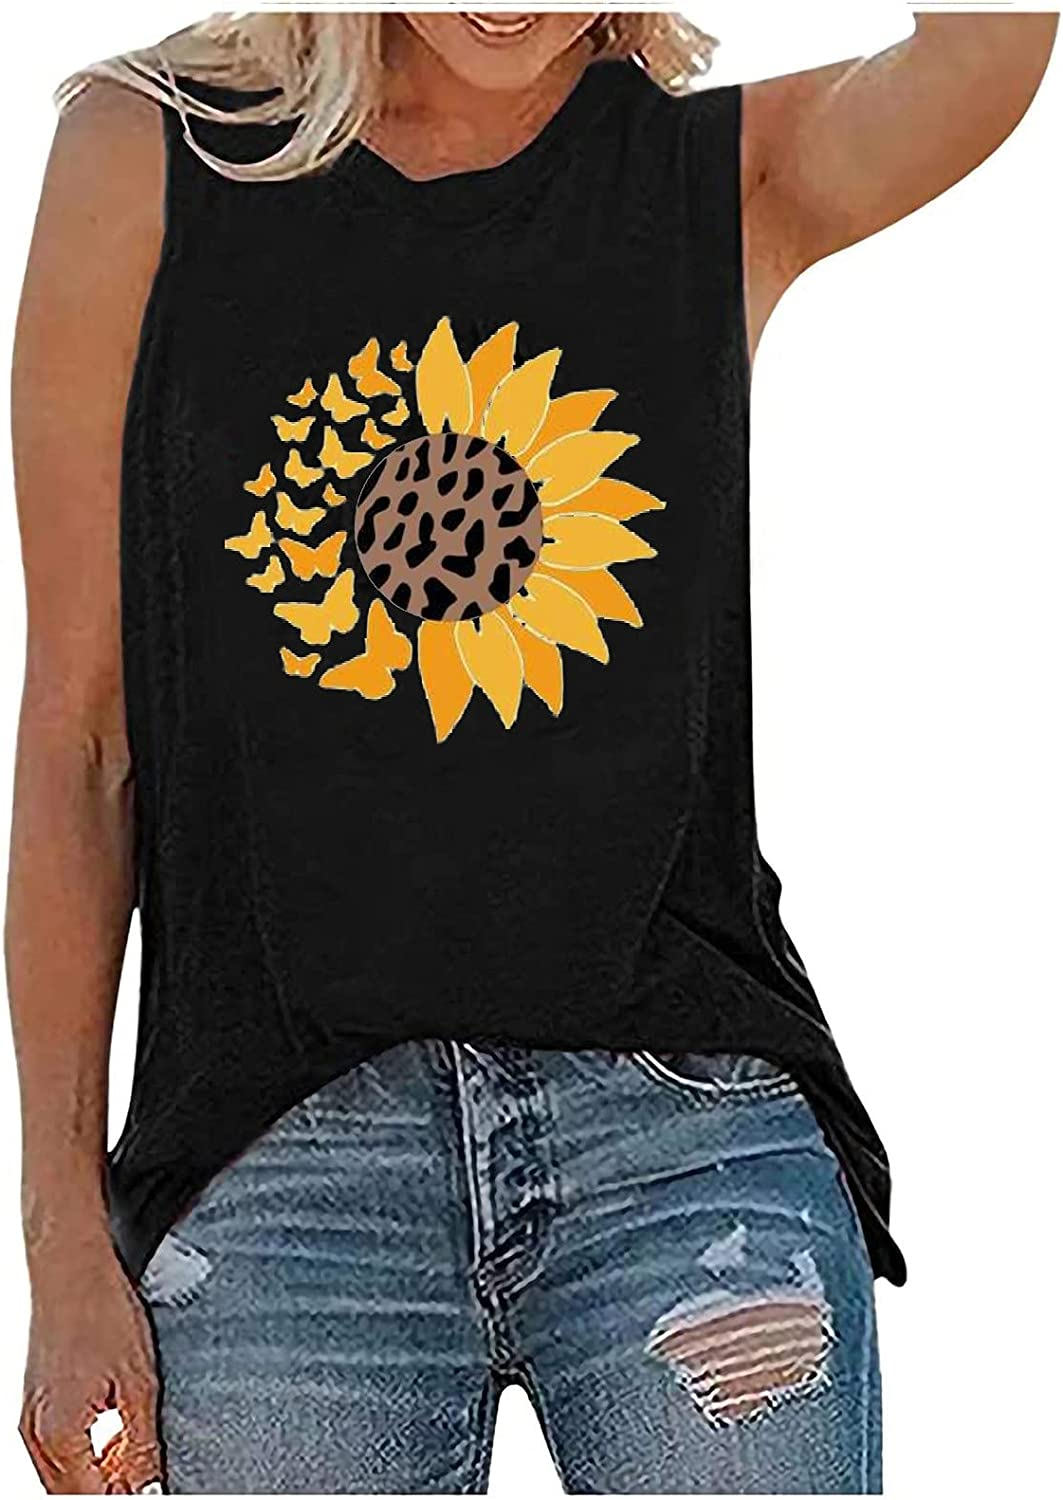 GOODTRADE8 Womens Tank Tops Casual Loose Fit Plus Size Sunflower Printed Tee Shirts Summer Tops Tee Shirts Blouse